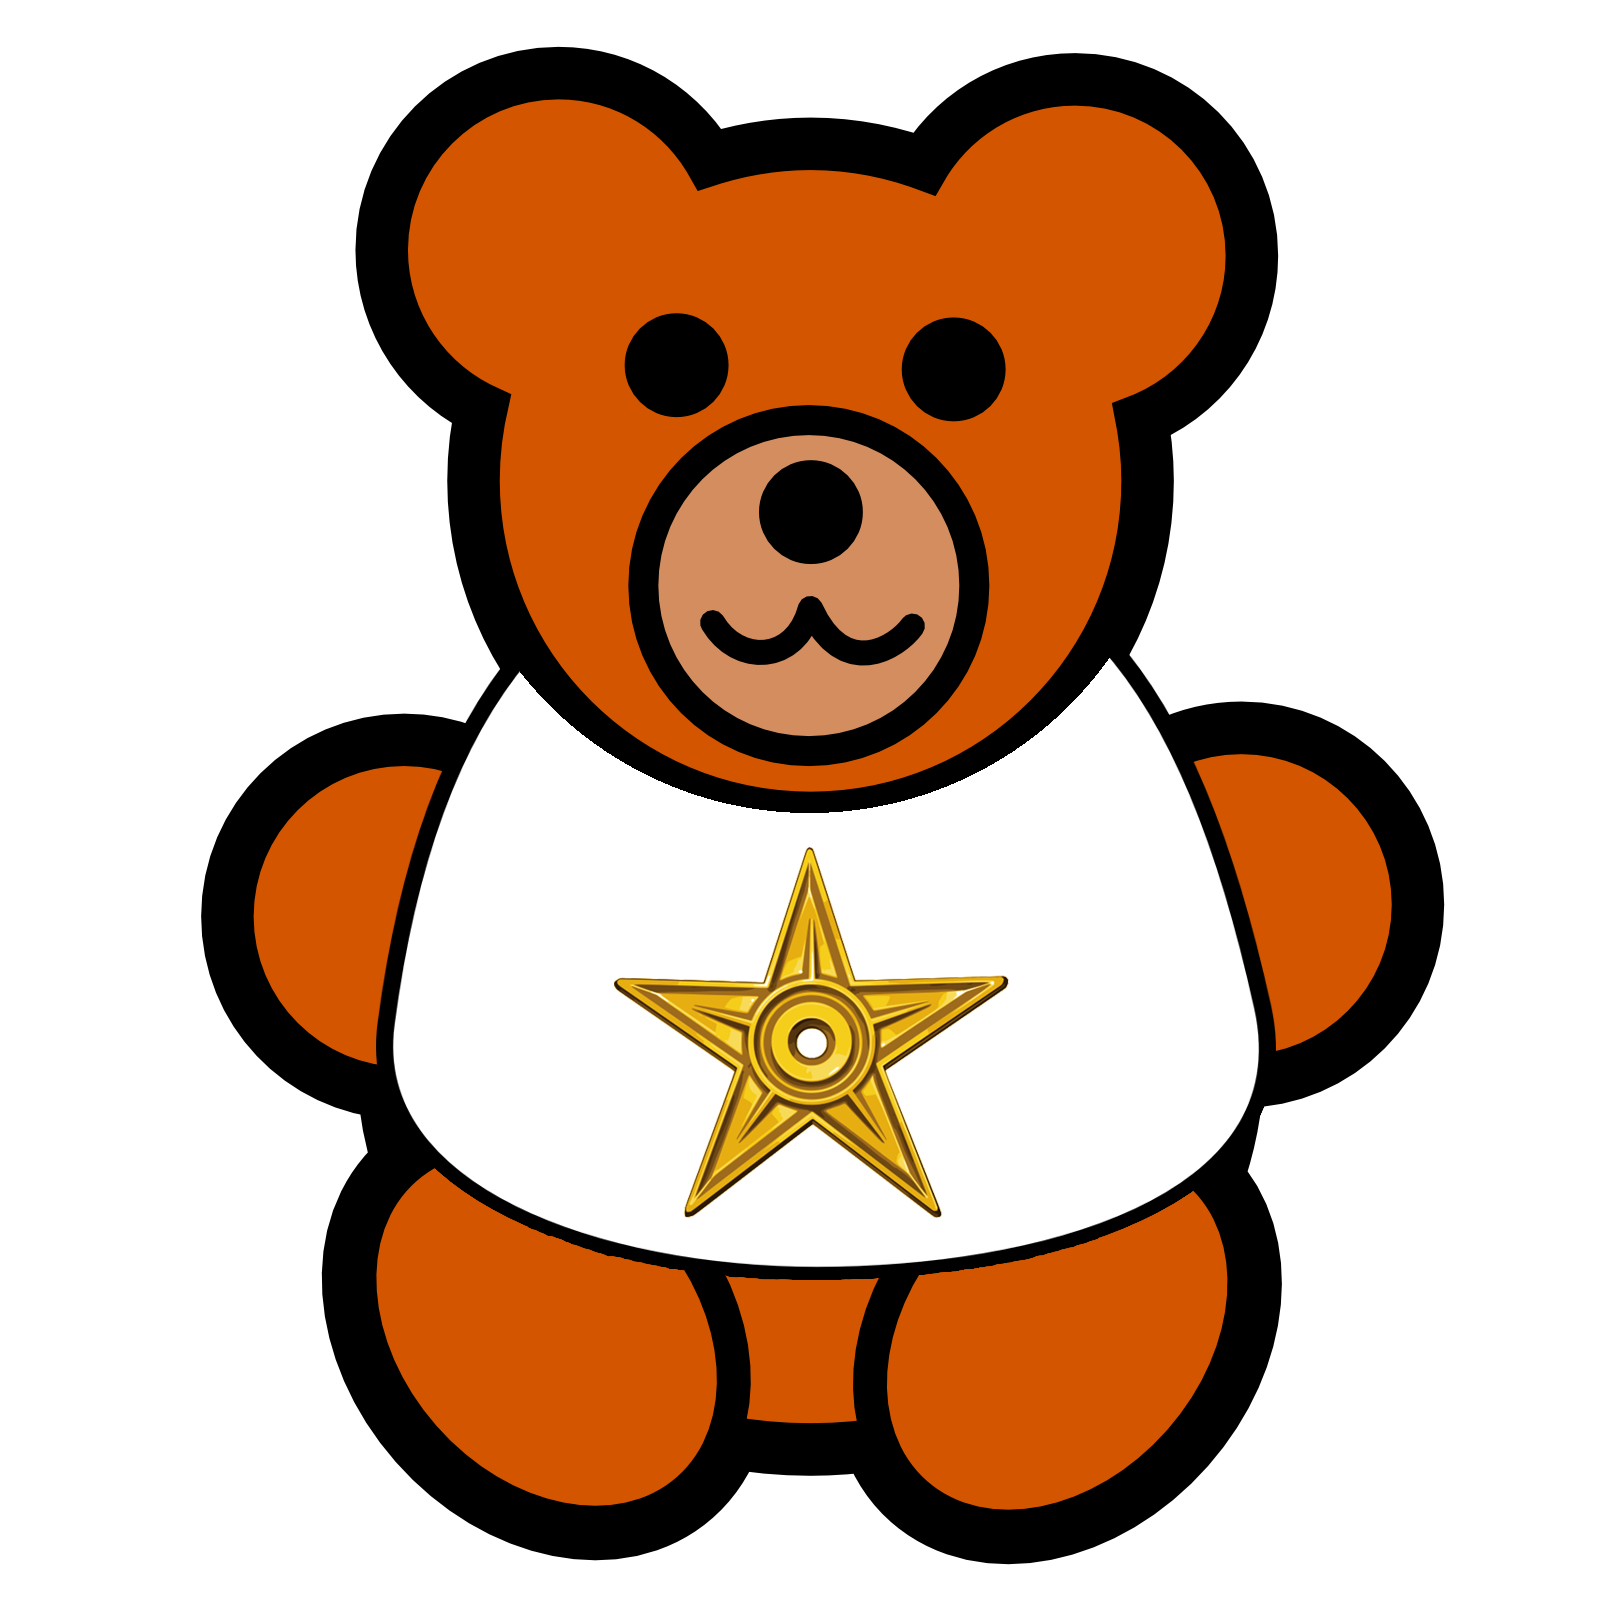 File:New Bearnstar.png.